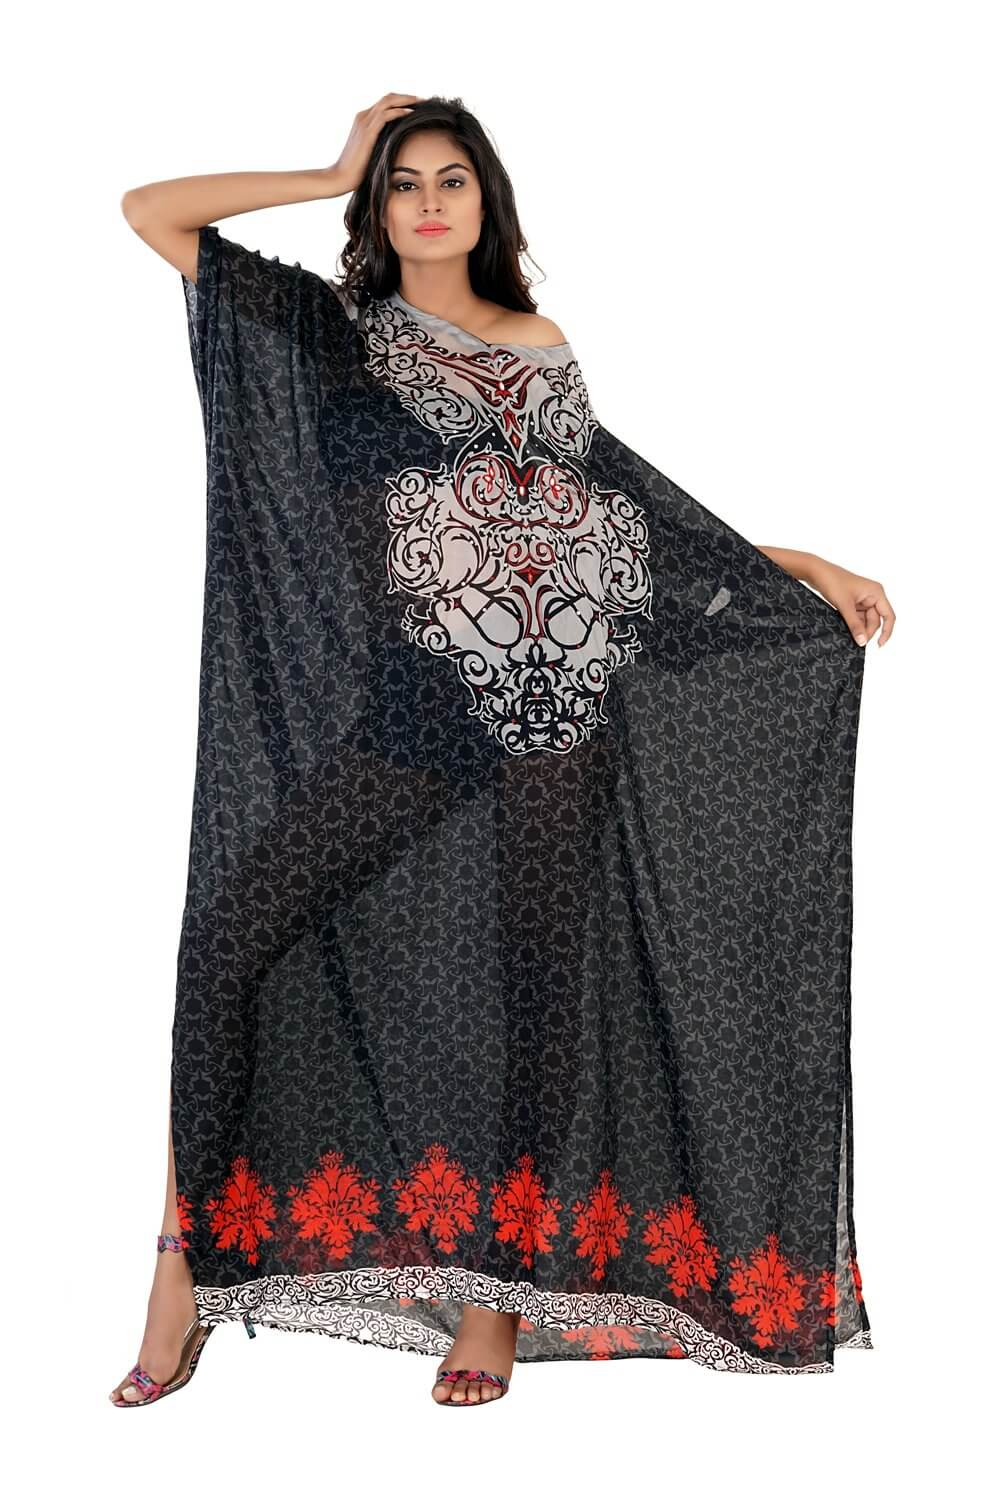 black caftan dress